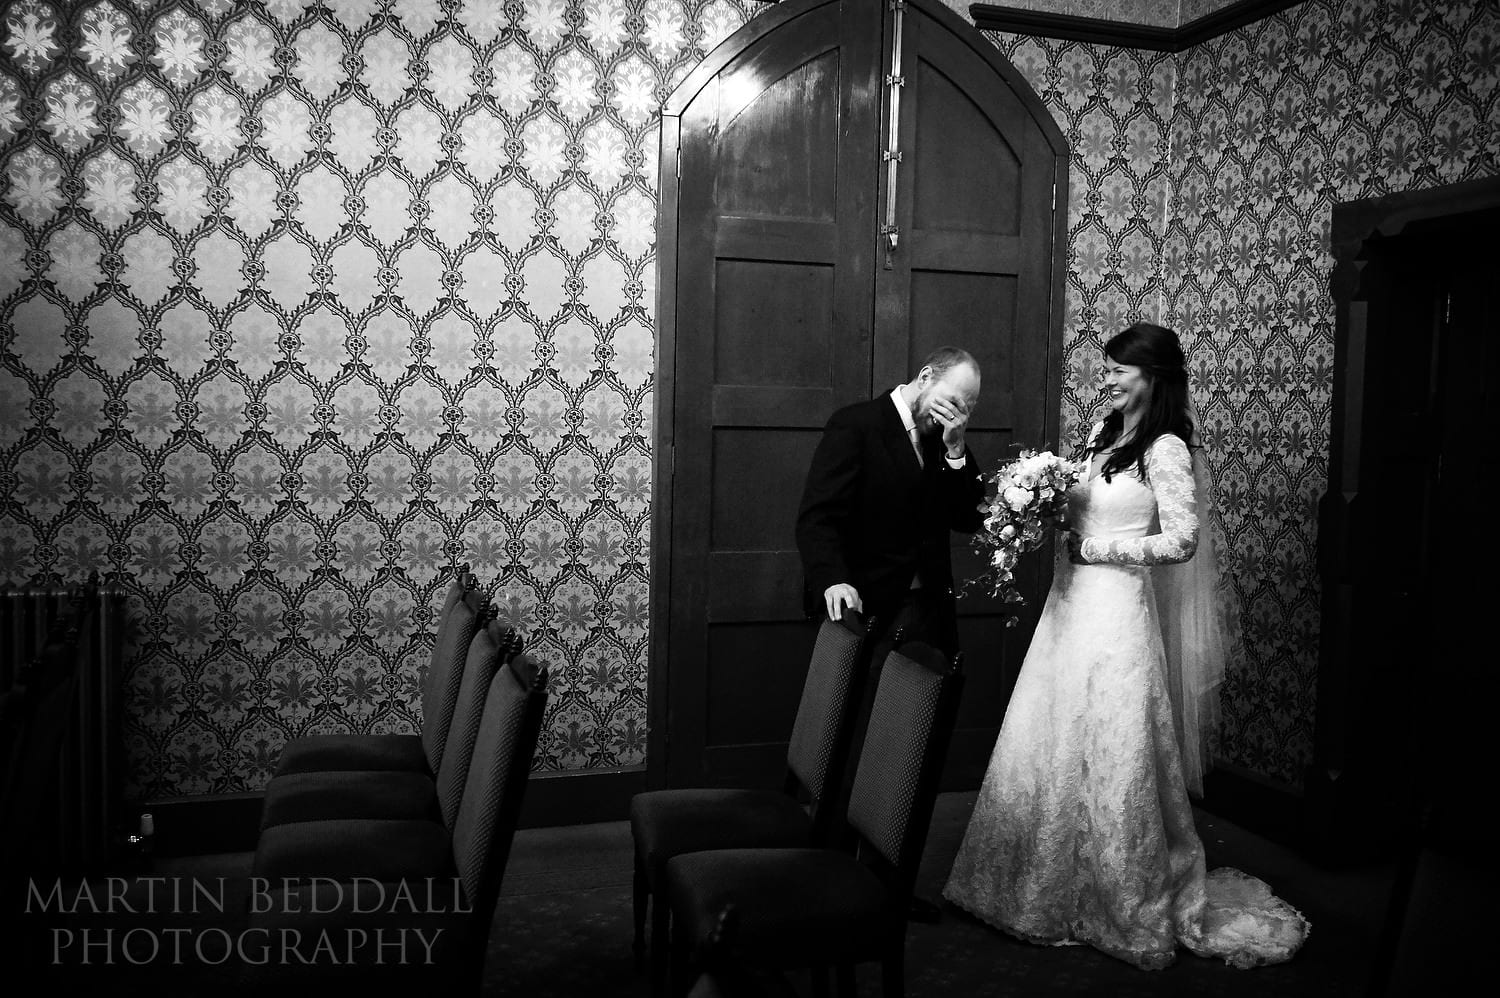 After the wedding ceremony at Northampton Guildhall